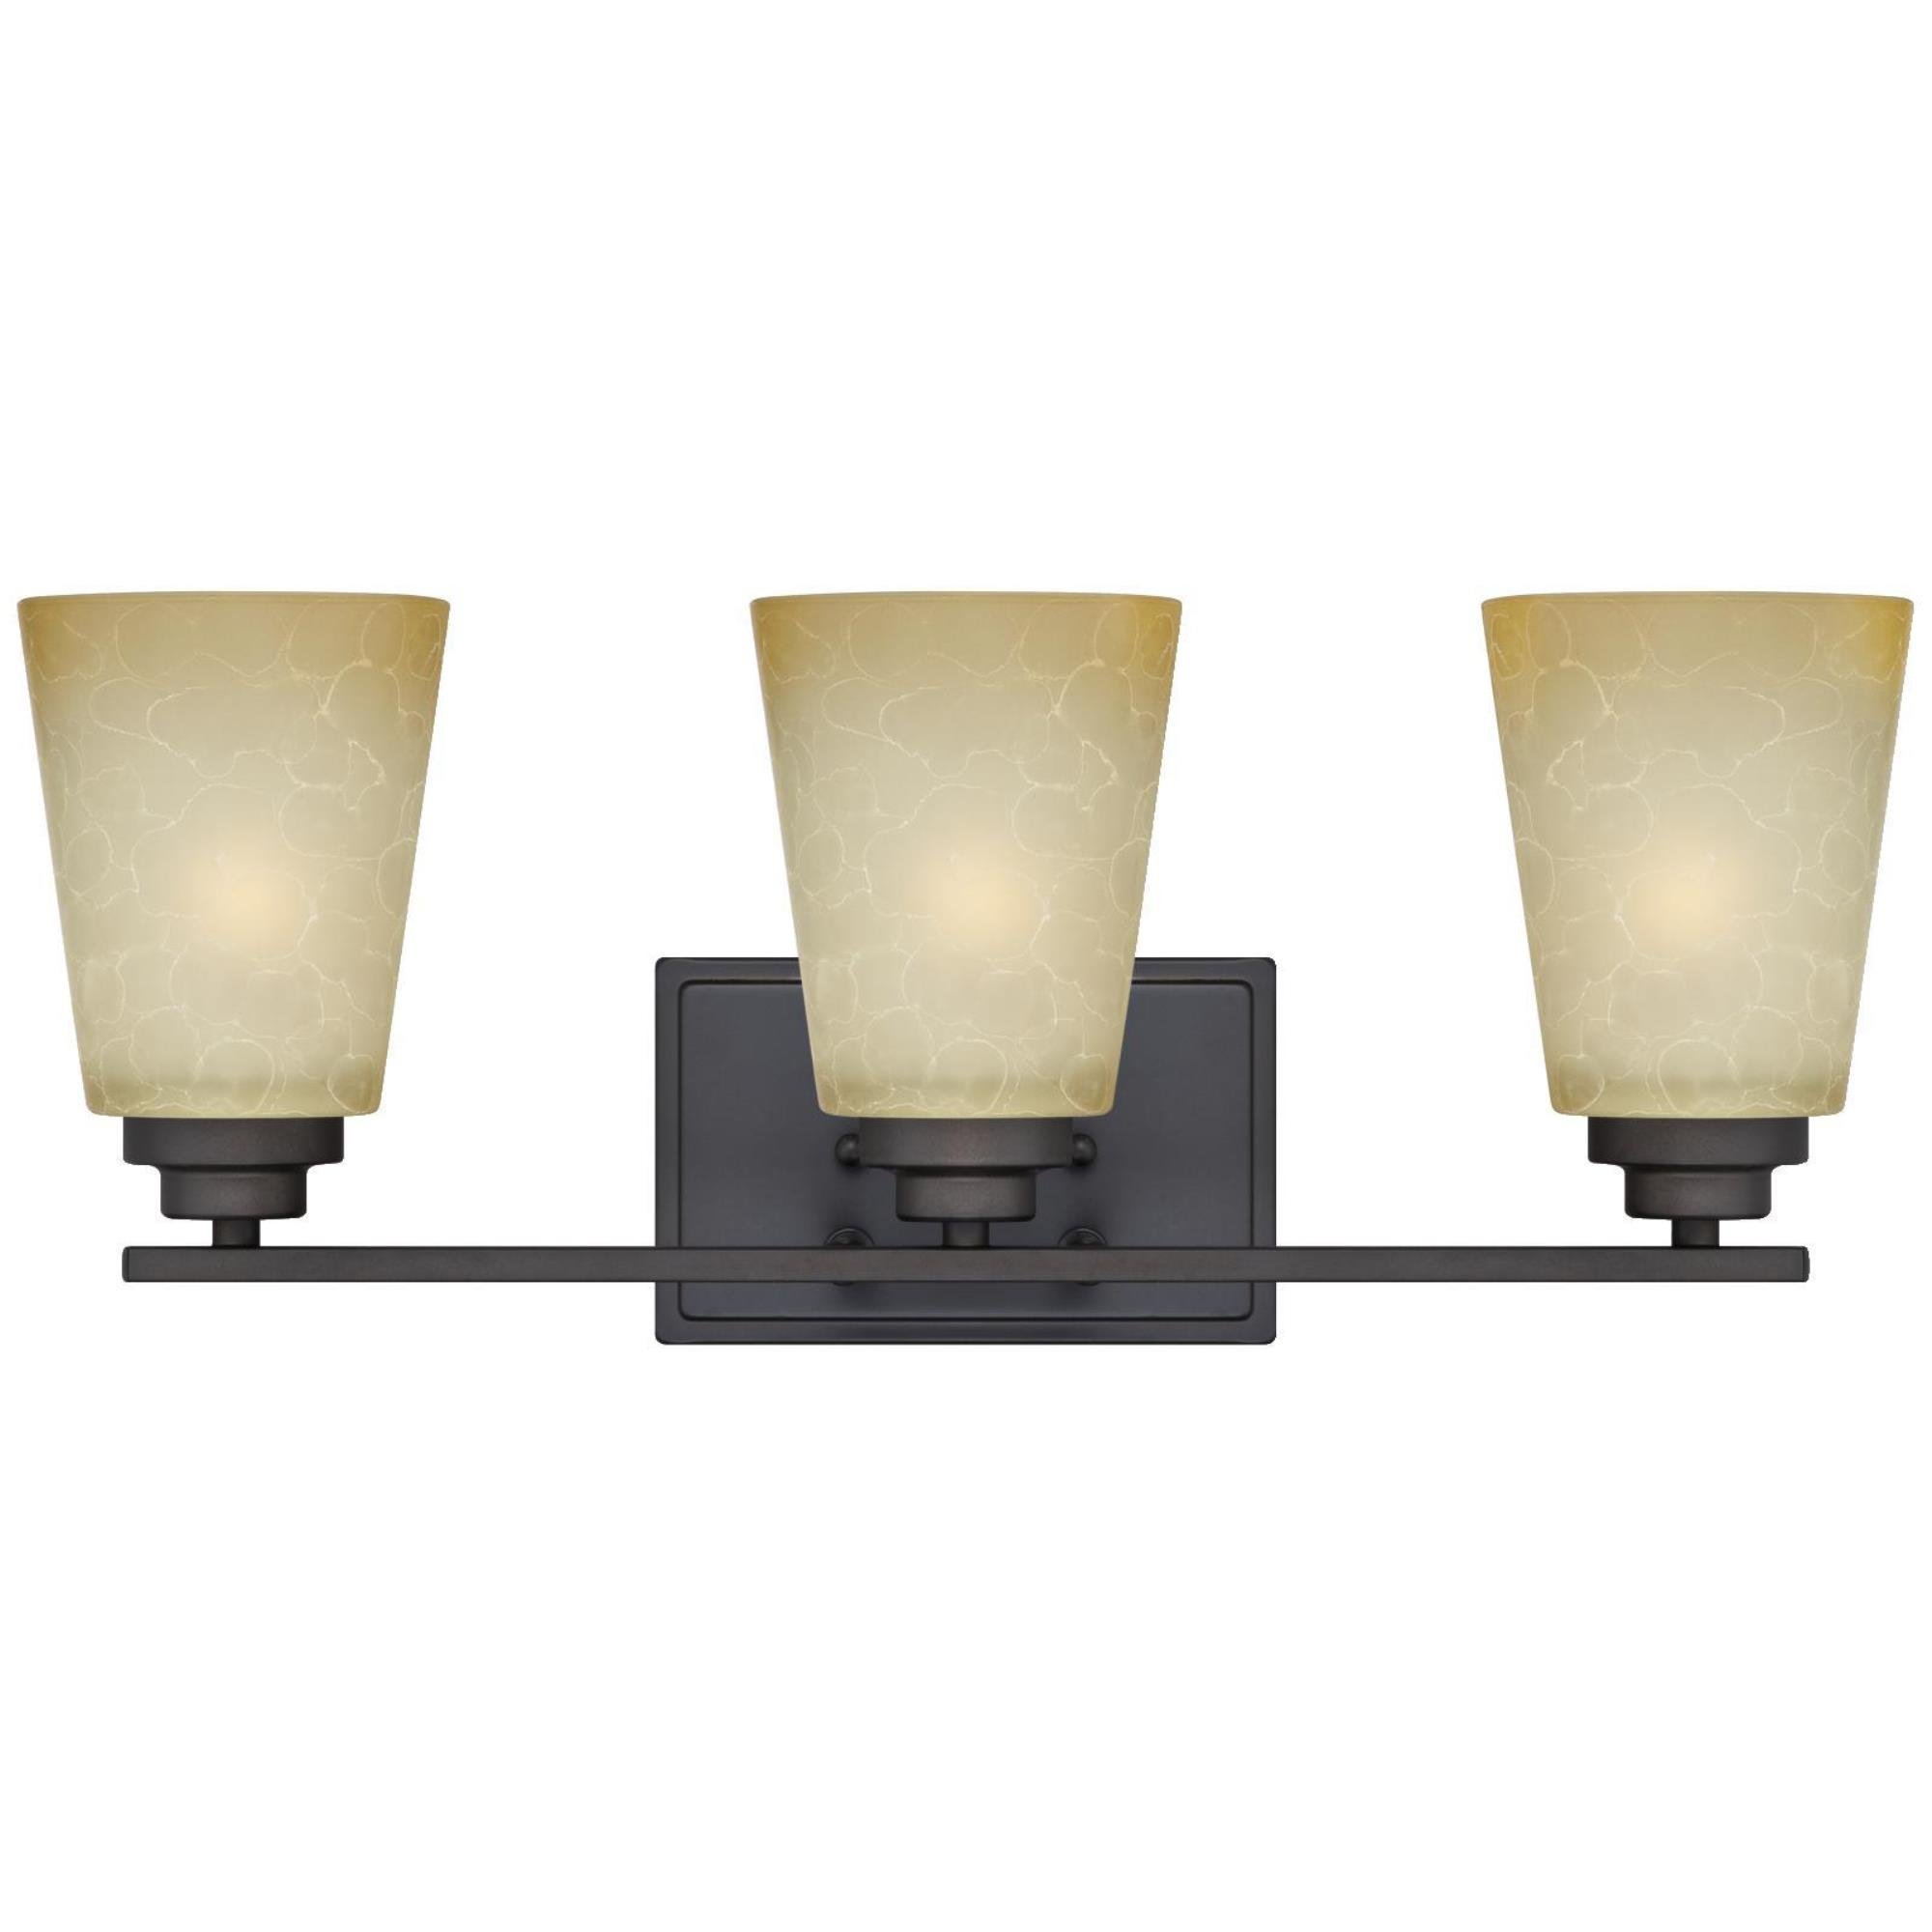 Westinghouse 63442C Ewing 3 Light Indoor Wall Fixture, Oil Rubbed Bronze by Westinghouse